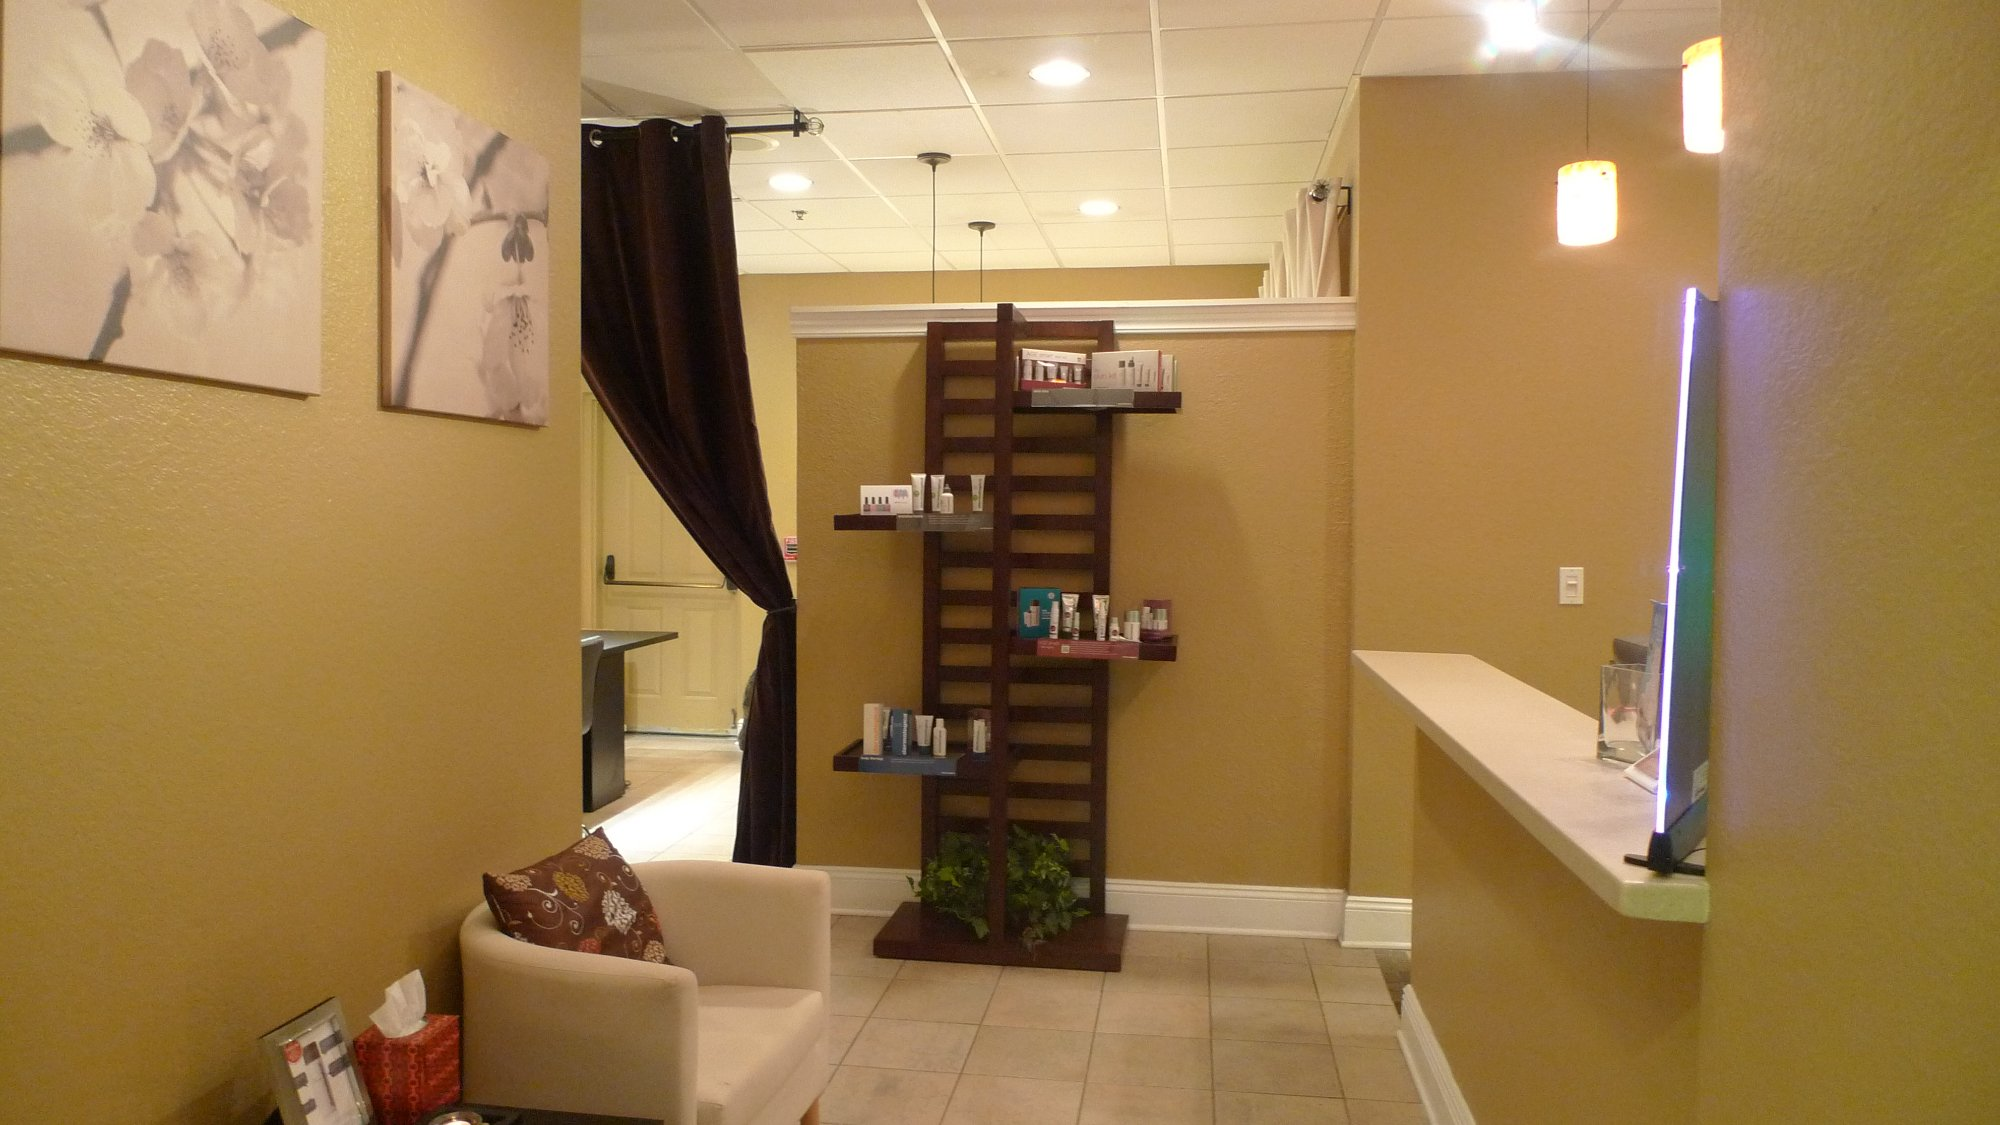 Cenote day spa davenport fl top tips before you go for 186 davenport salon review